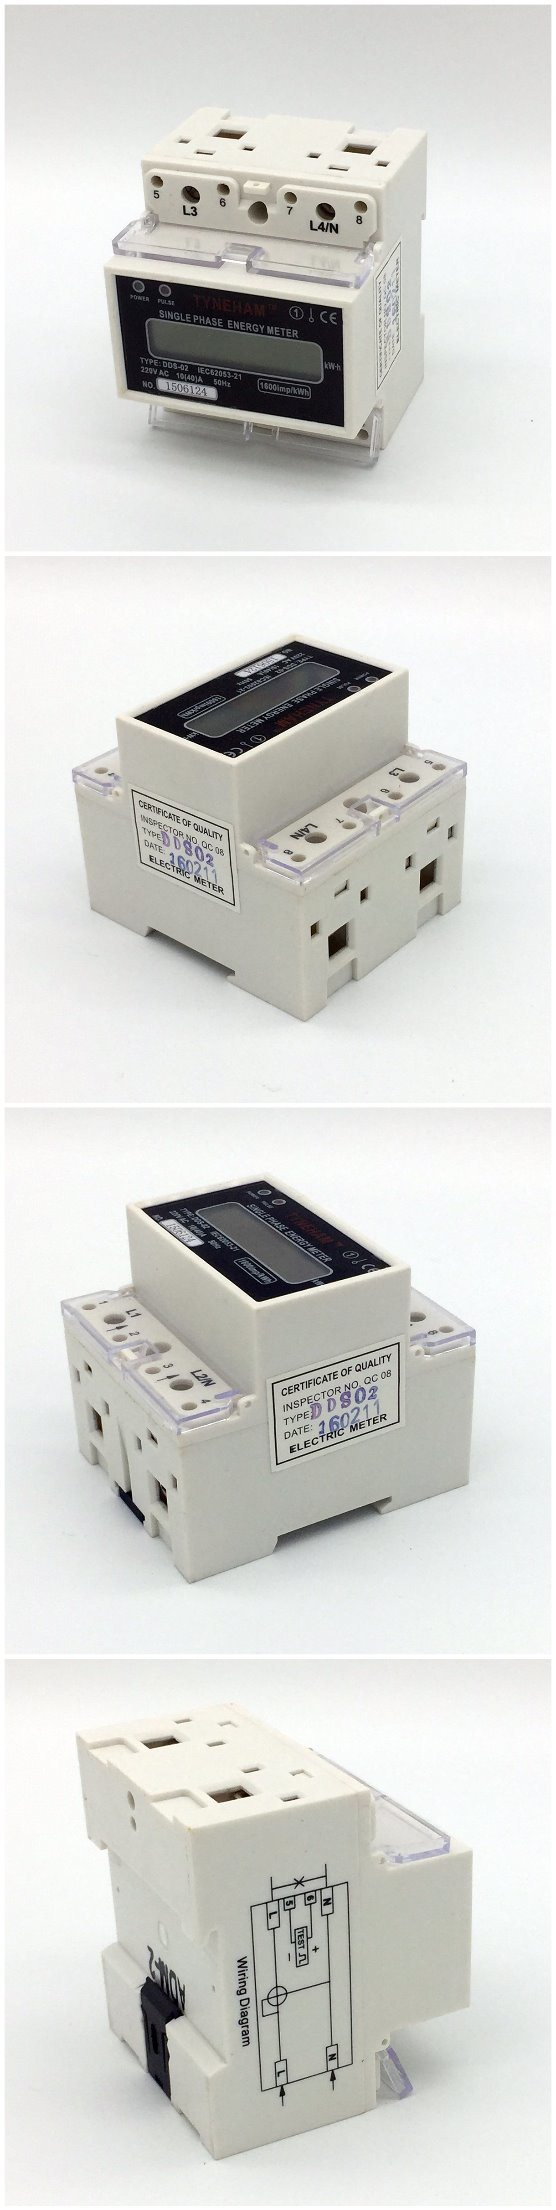 Dds 5l Single Phase Two Wire Three Din Rial Power Energy Meter Wiring Diagram Appearance Packing